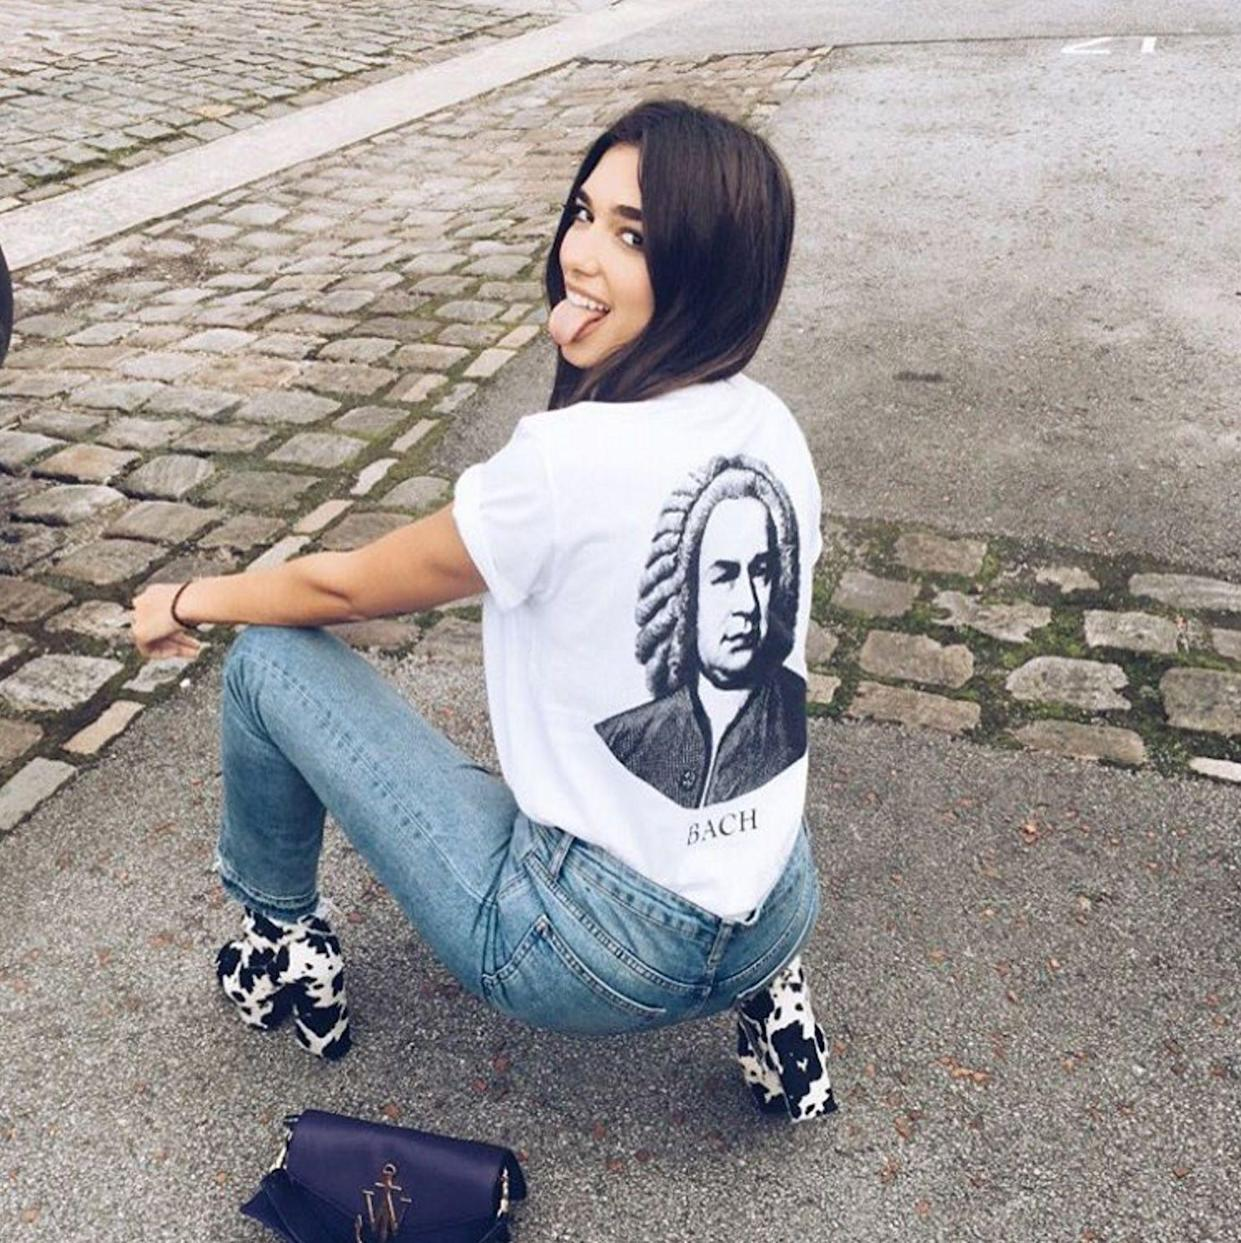 """<p><strong>The Classic Centre</strong></p> <p>We're pretty obsessed with singer <a href=""""https://www.instagram.com/dualipa/?hl=en"""" rel=""""nofollow noopener"""" target=""""_blank"""" data-ylk=""""slk:Dua Lipa"""" class=""""link rapid-noclick-resp"""">Dua Lipa</a> 's voice and style (have you seen those boots and that <a href=""""http://www.refinery29.uk/2016/09/123313/jw-anderson-ss17-lfw"""" rel=""""nofollow noopener"""" target=""""_blank"""" data-ylk=""""slk:J.W.Anderson"""" class=""""link rapid-noclick-resp"""">J.W.Anderson</a> bag?!) but we're equally enamoured with her long, dark locks and simple centre parting.</p> <span class=""""copyright"""">Photo: via @dualipa.</span>"""